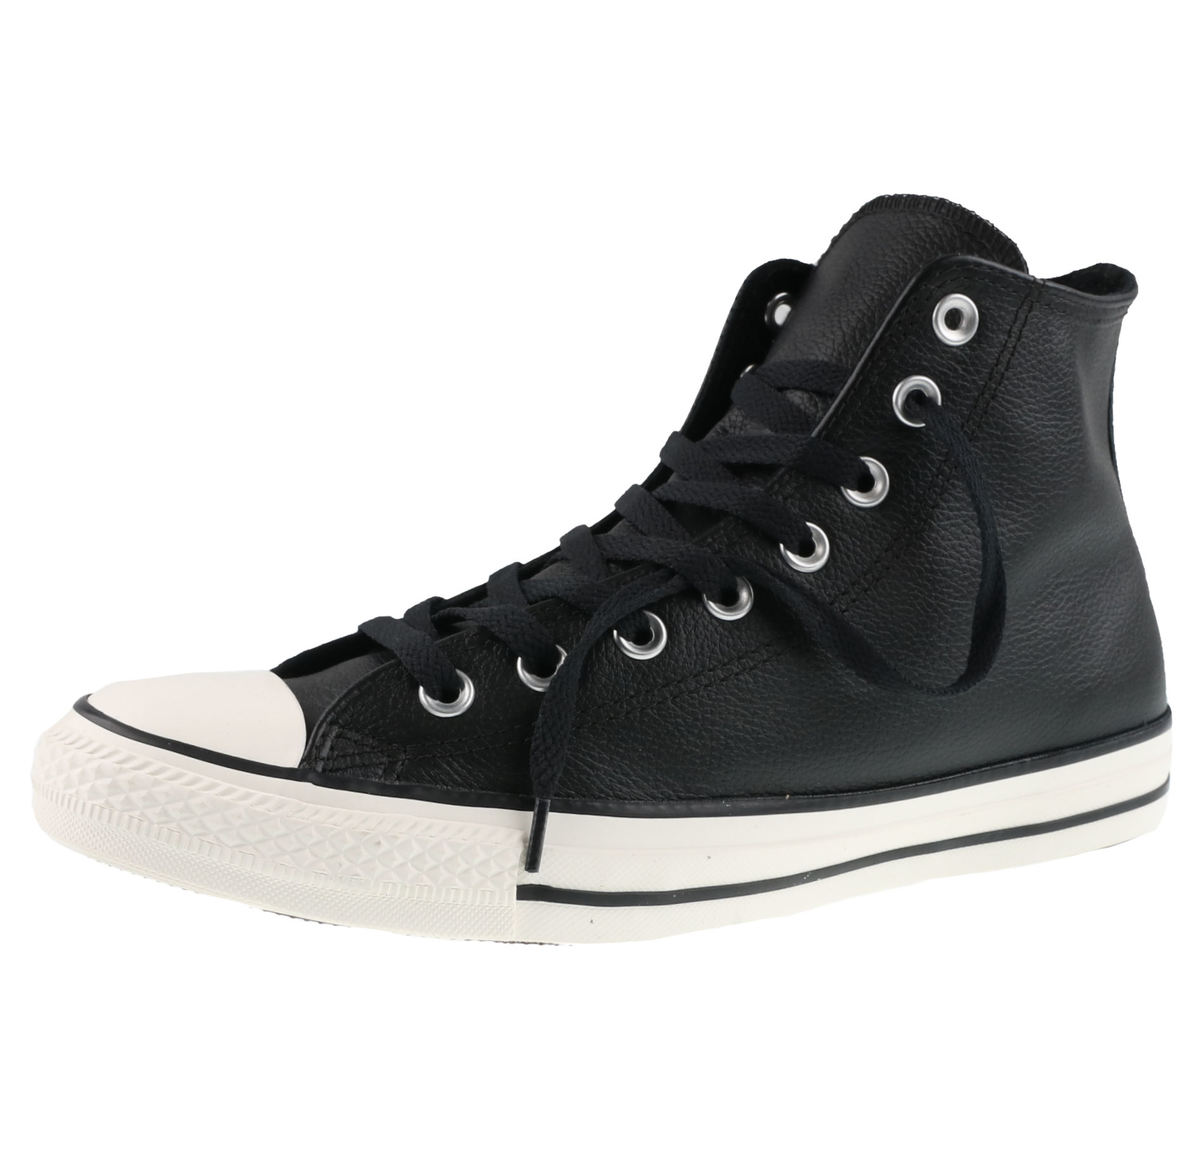 boty CONVERSE - Chuck Taylor All Star - C157468